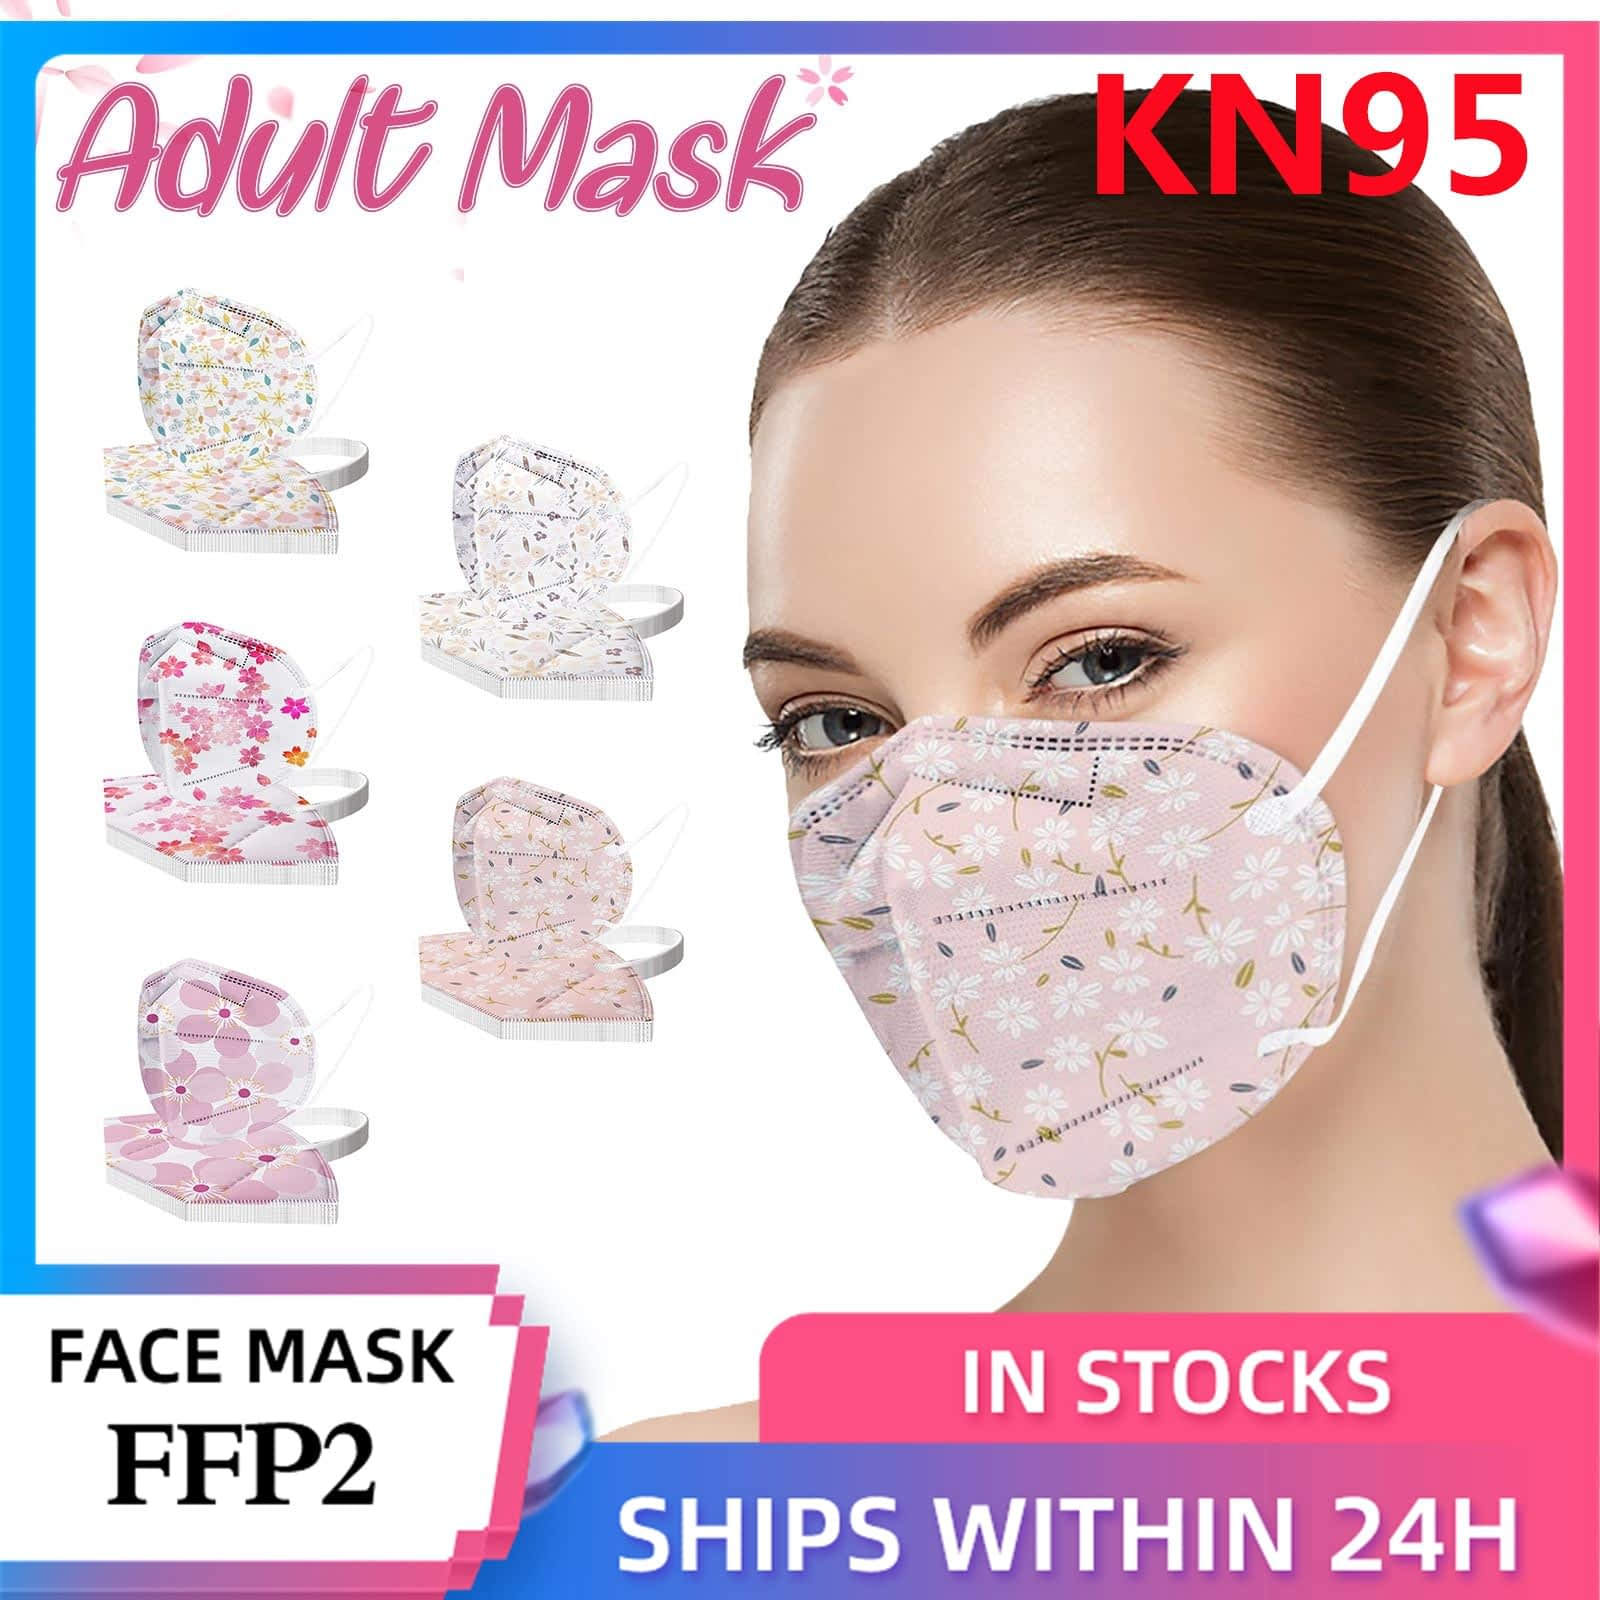 Adult-3Ply-Kn95-Mask-Fpp2-Approved-Facial-Mouth-Mask-Reusable-Filter-Protection-Face-Mask-For-Virus.jpg